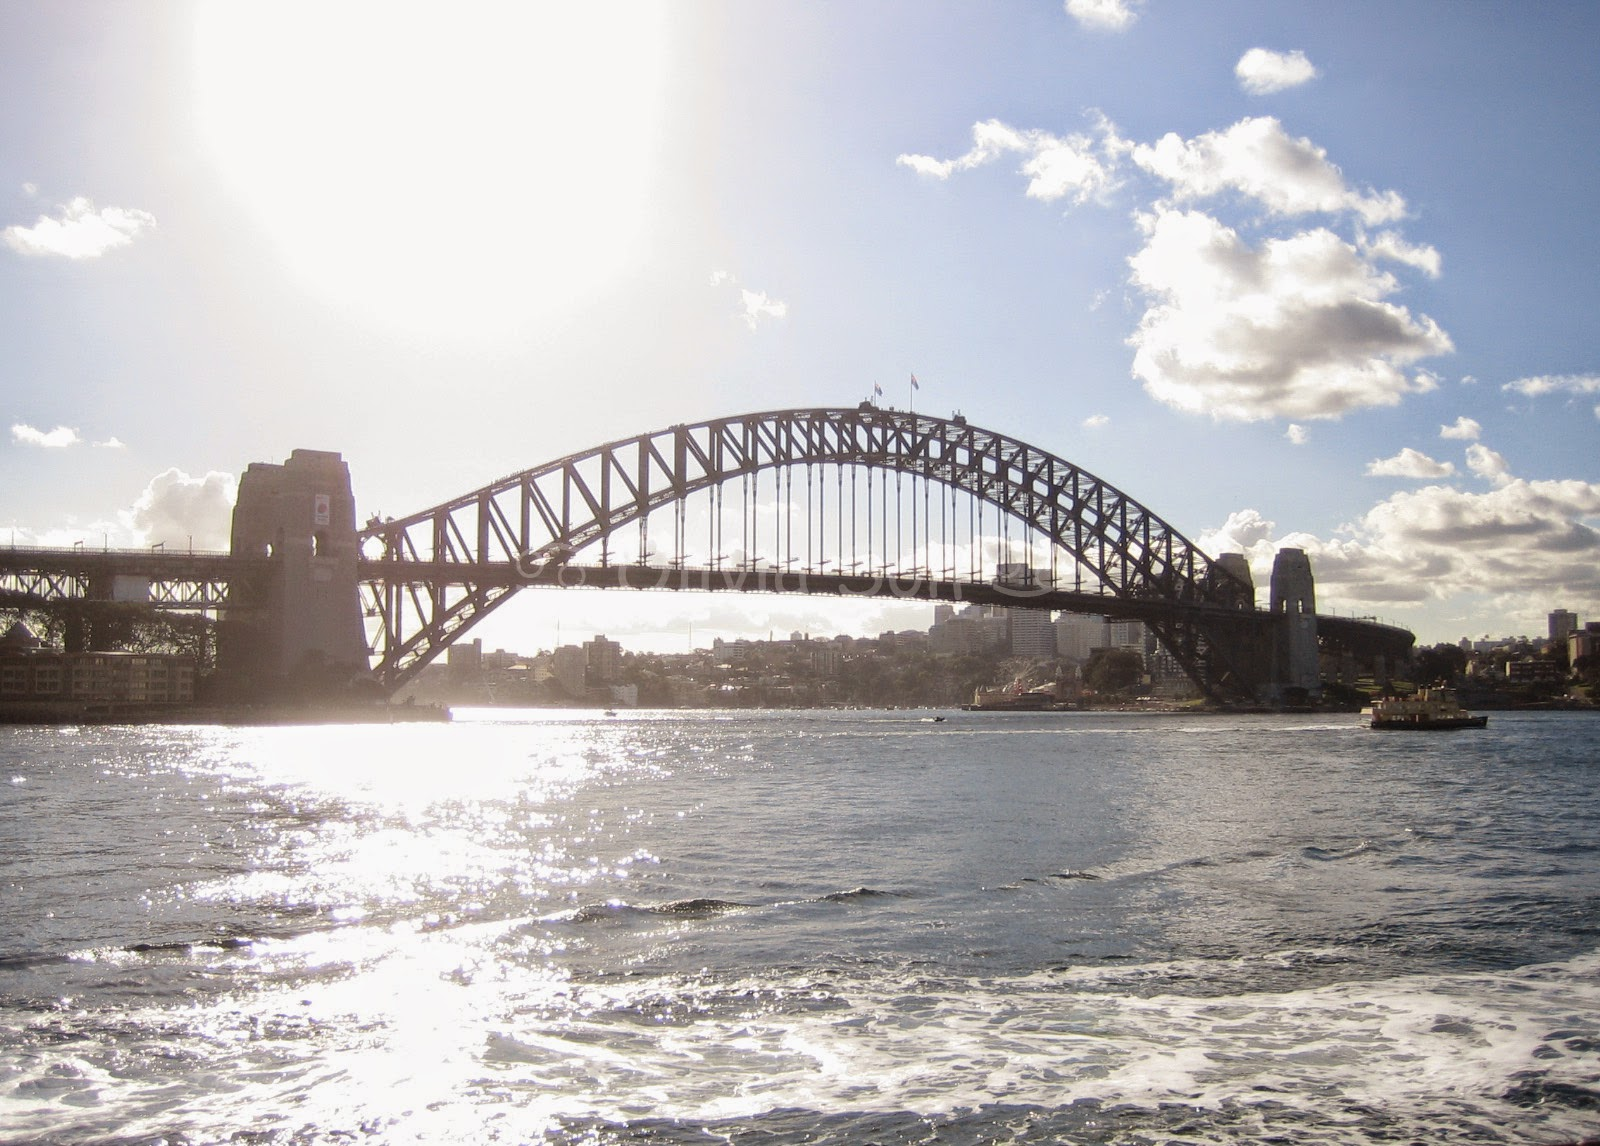 Sydney Harbour Bridge, Royal Botanic Gardens, Sydney, Australie